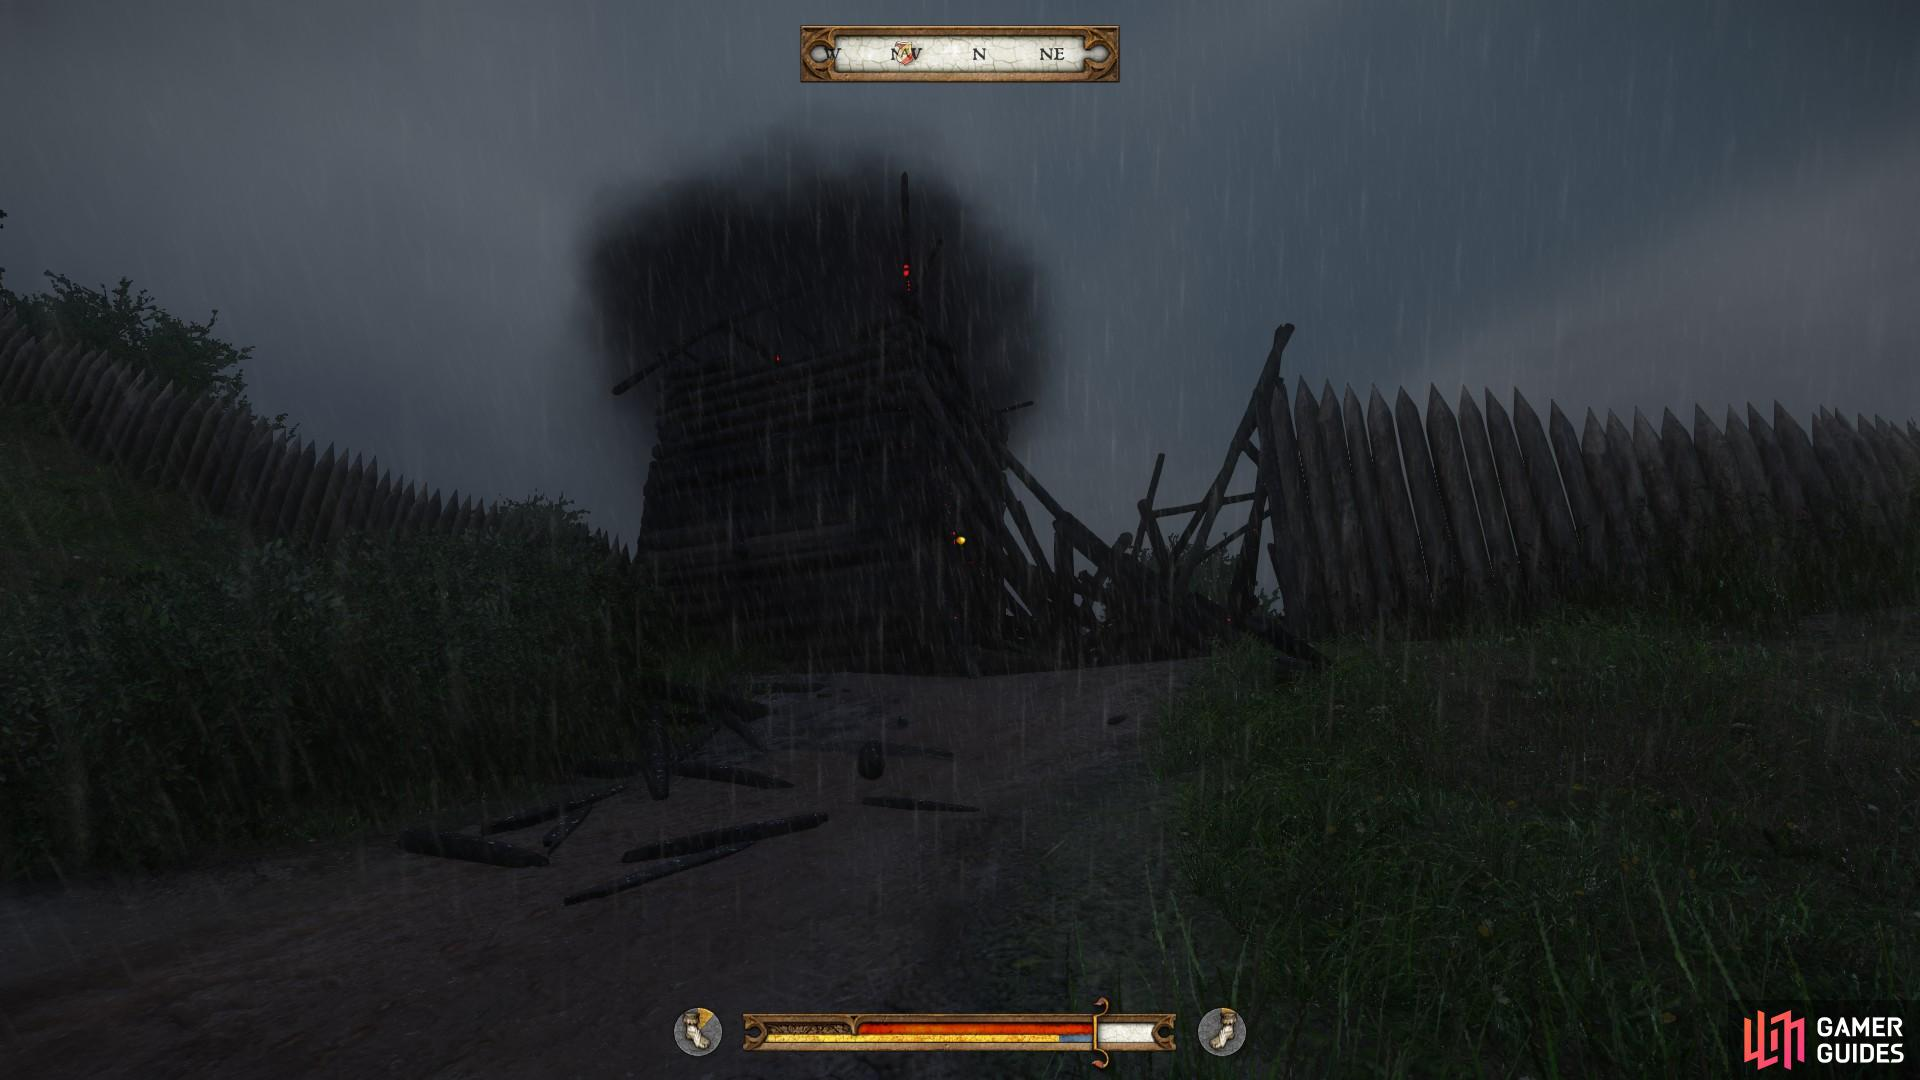 Skalitz is inaccessible from the southern gate. Head to the northern gate to gain access.